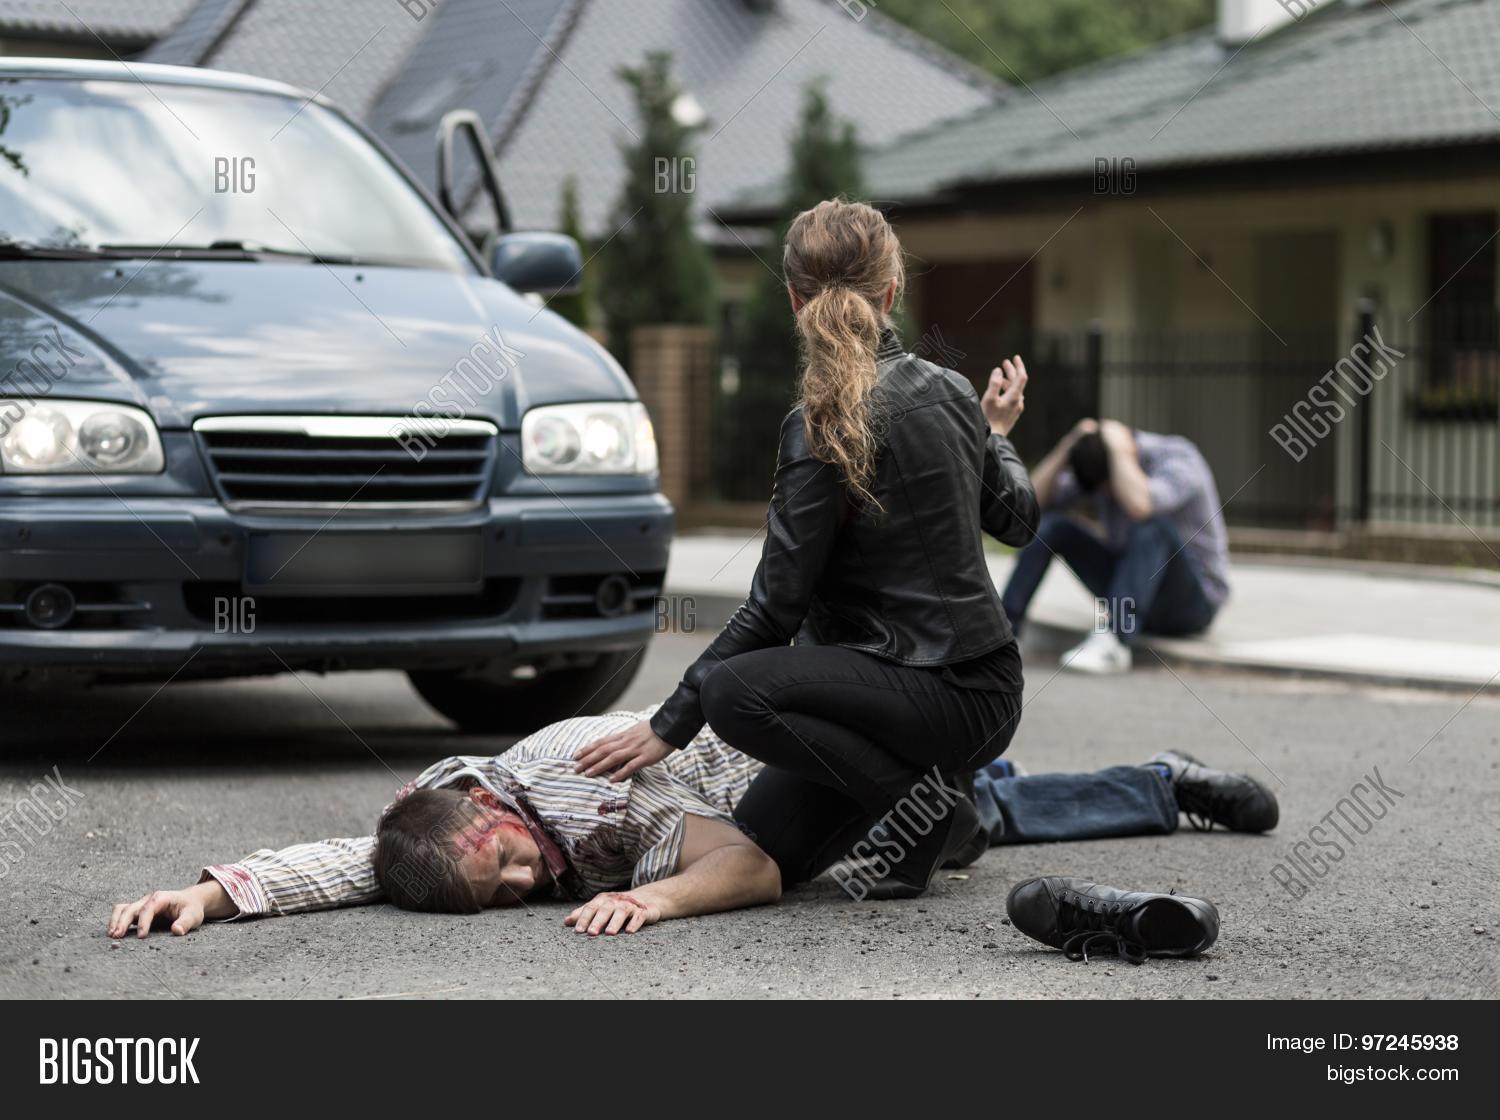 Victim Car Accident Image Photo Free Trial Bigstock